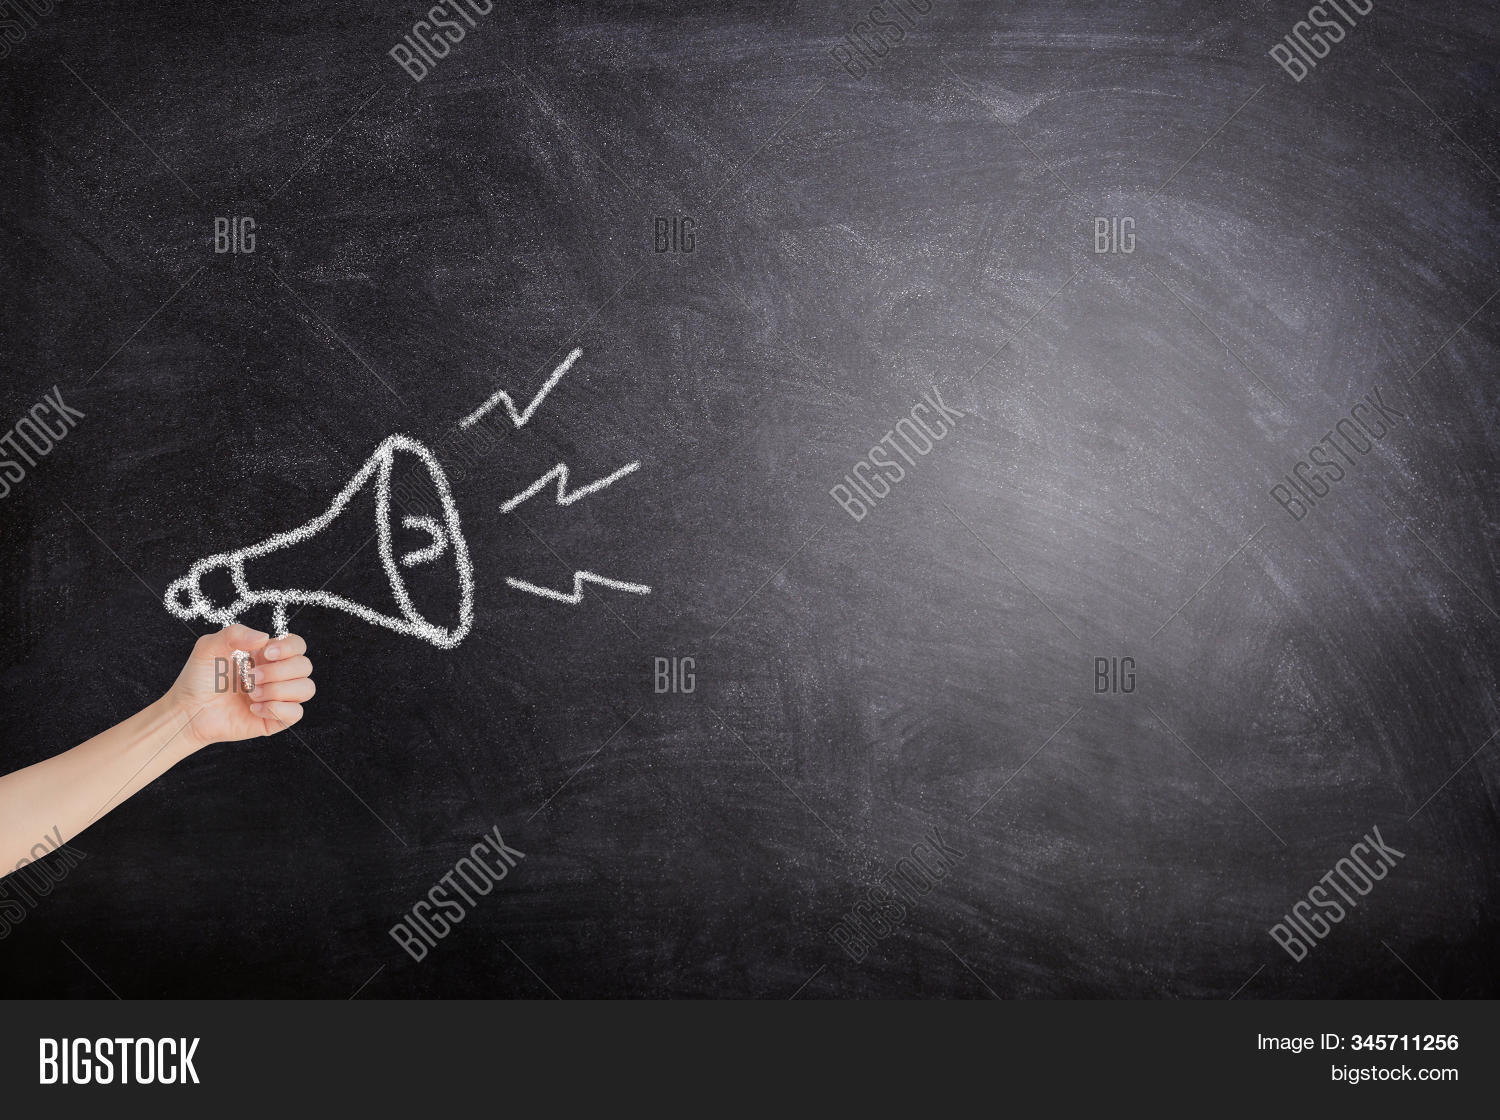 Business Communication and Marketing Concept : Female hand holding megaphone white chalk icon on blackboard for announcement and advertisement.